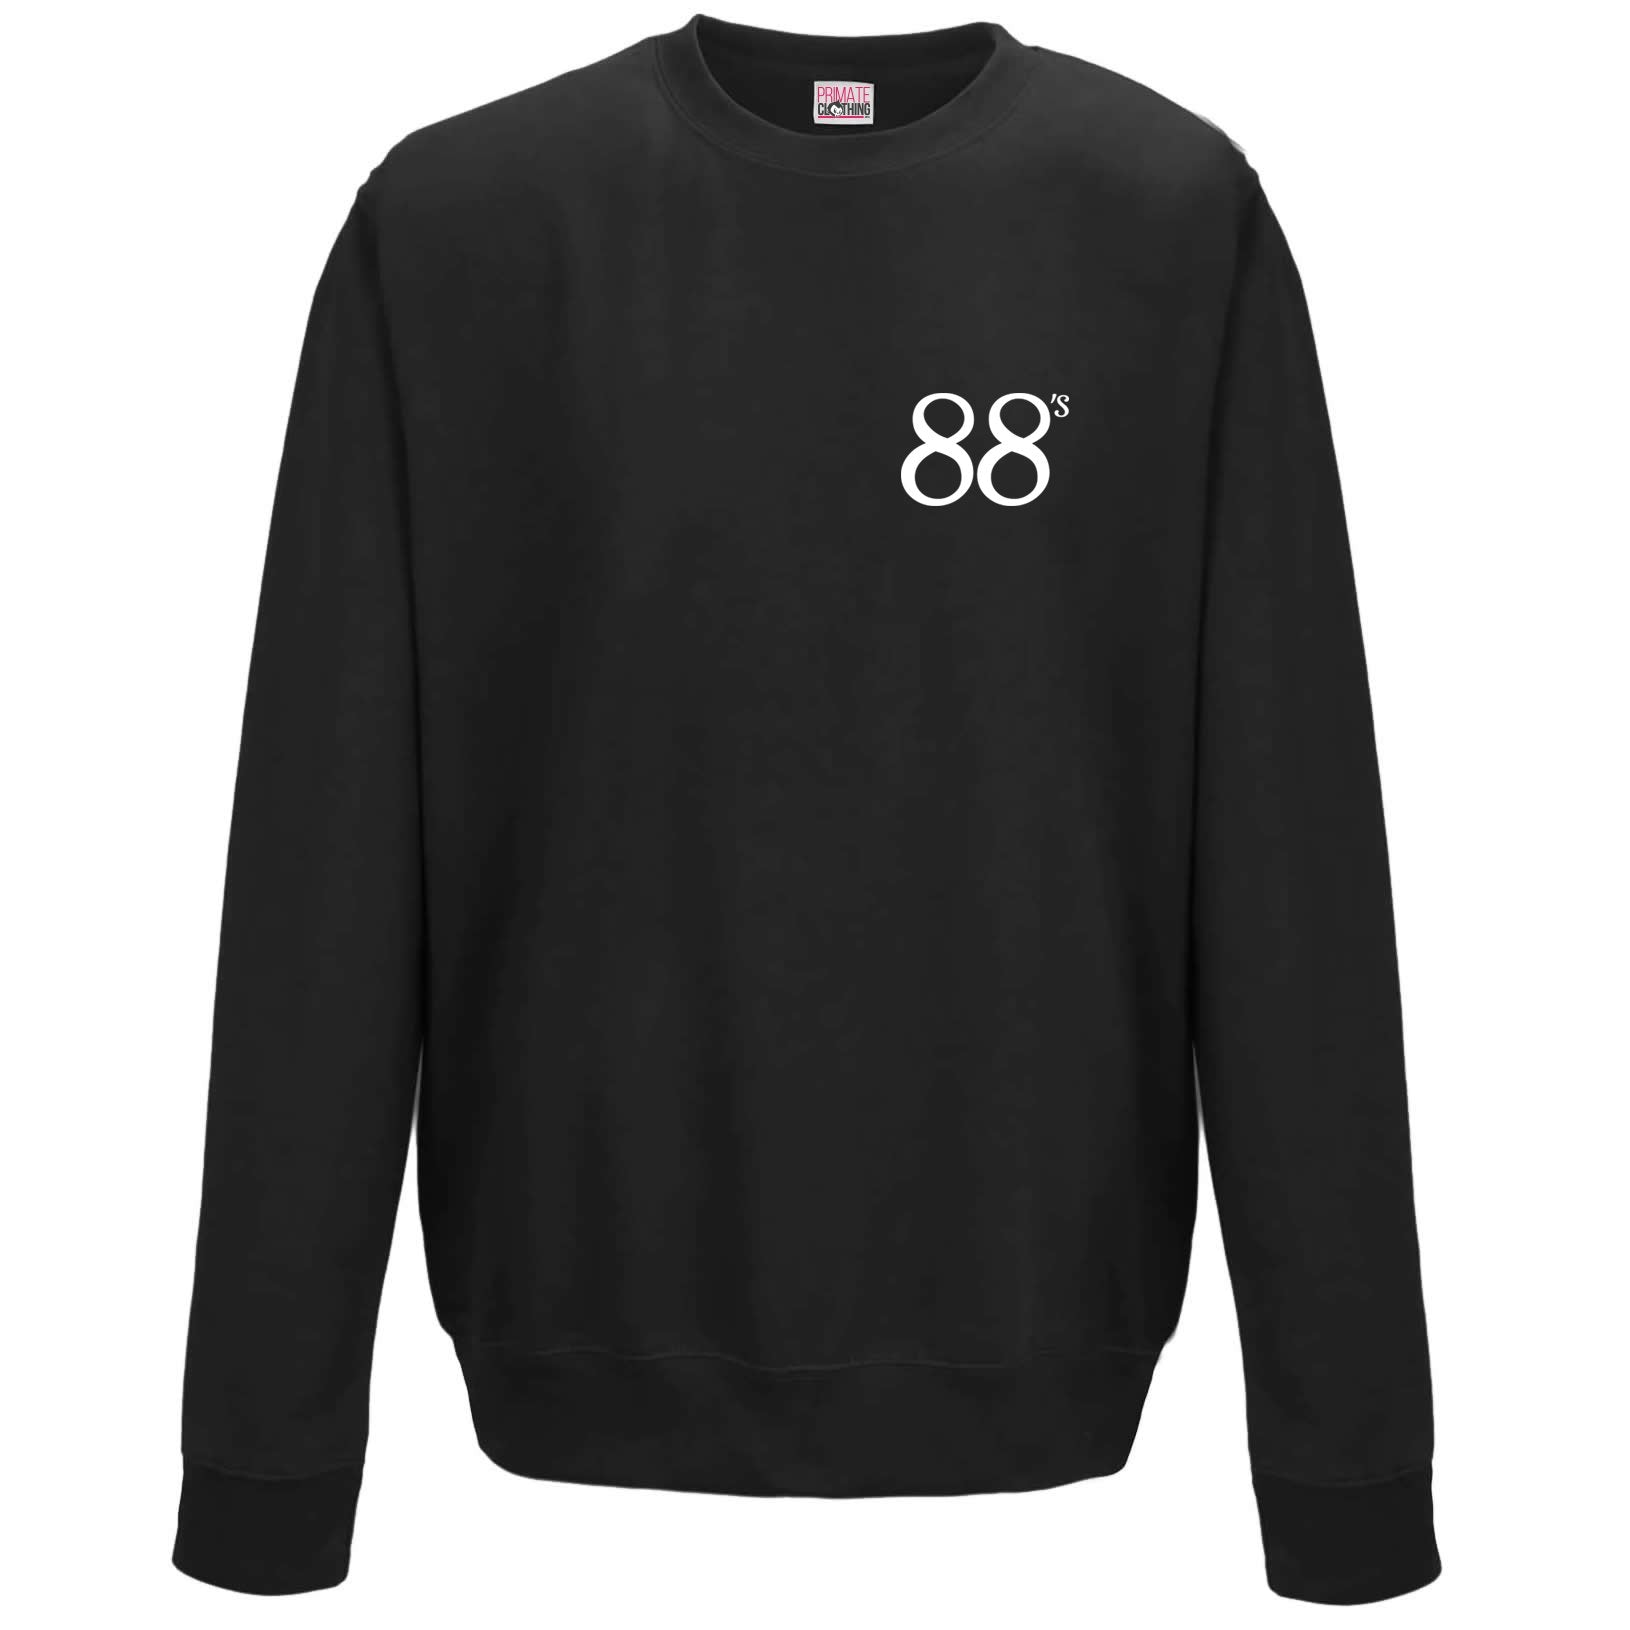 Southwest 88's - Sweatshirt Southwest 88's